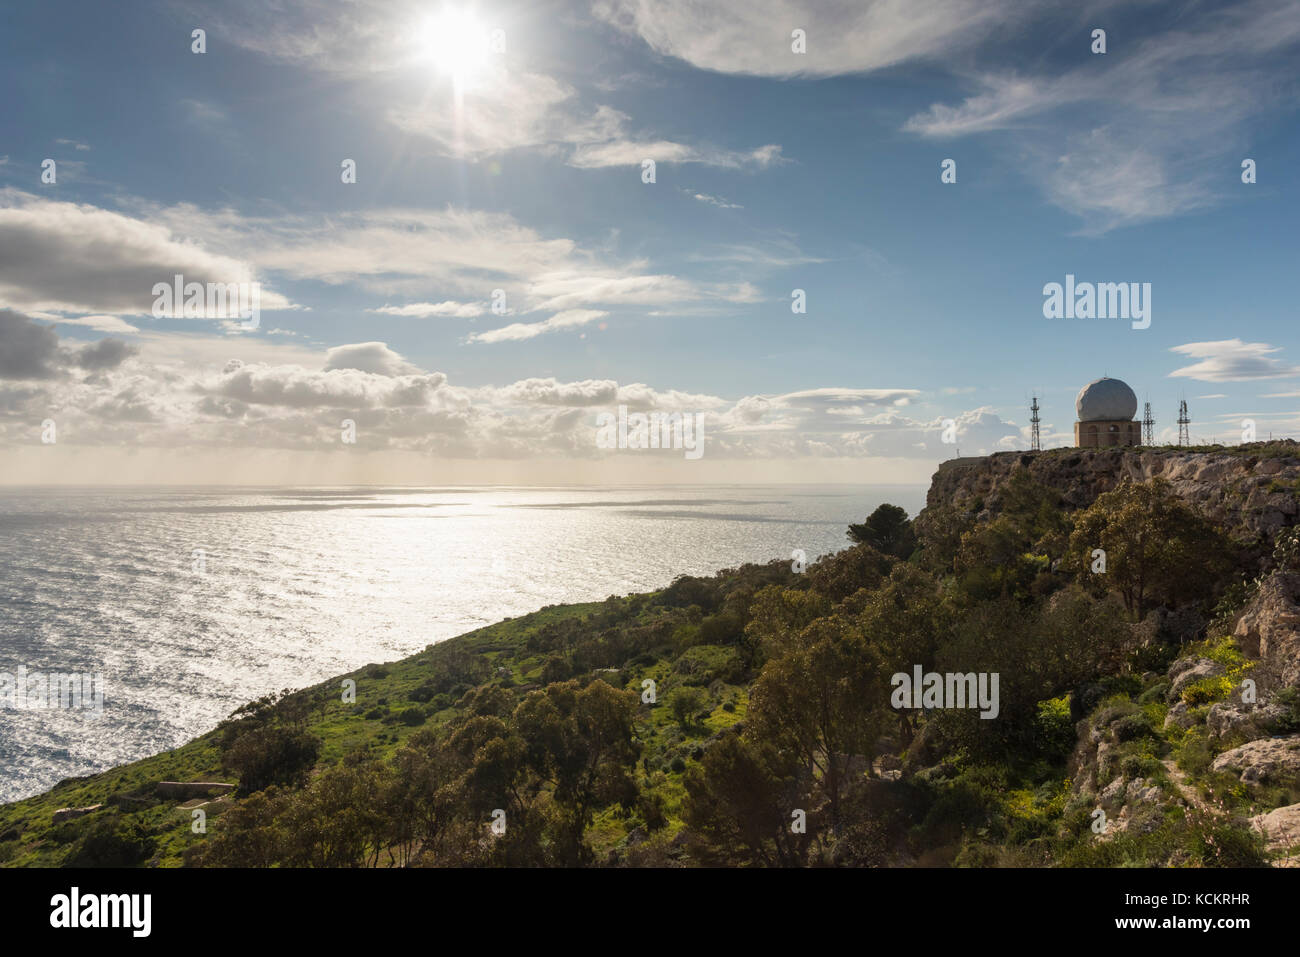 Dingli Radar dome at Dingli Cliffs Malta, part of te Maltese air traffic control system - Stock Image